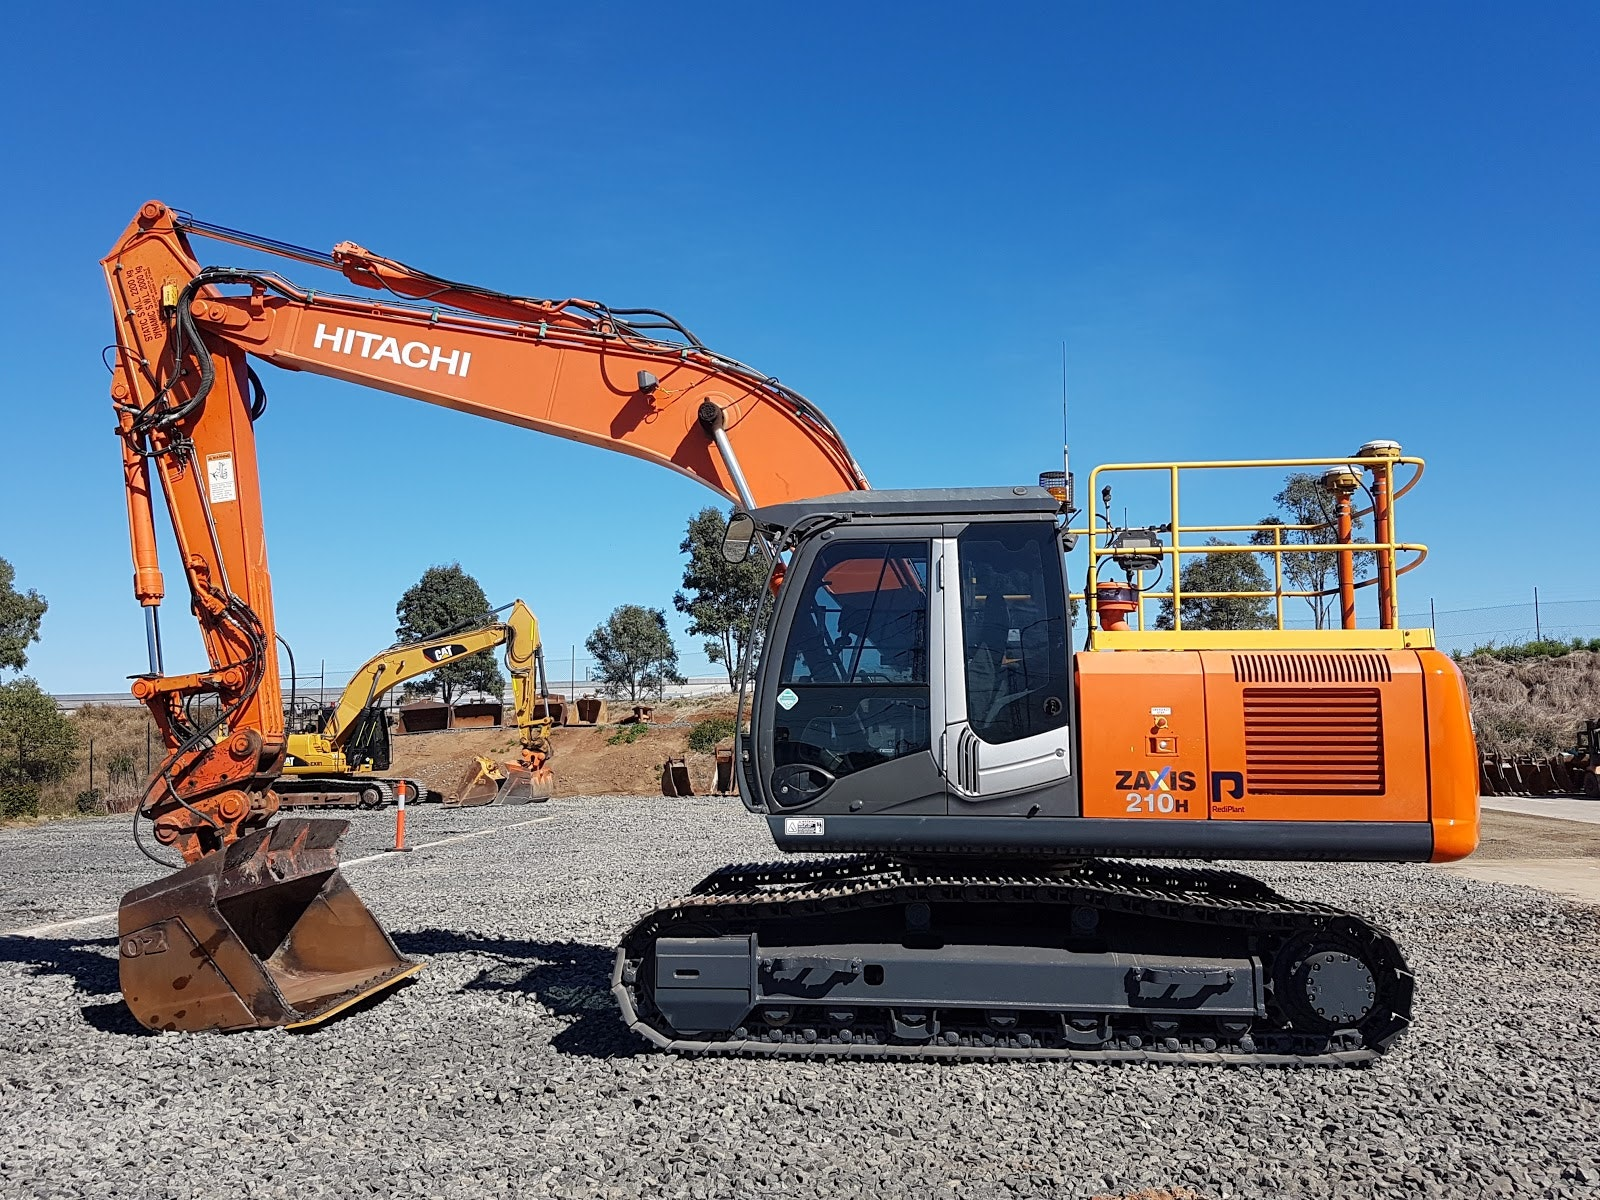 20t - 29t Excavator for hire - RediPlant